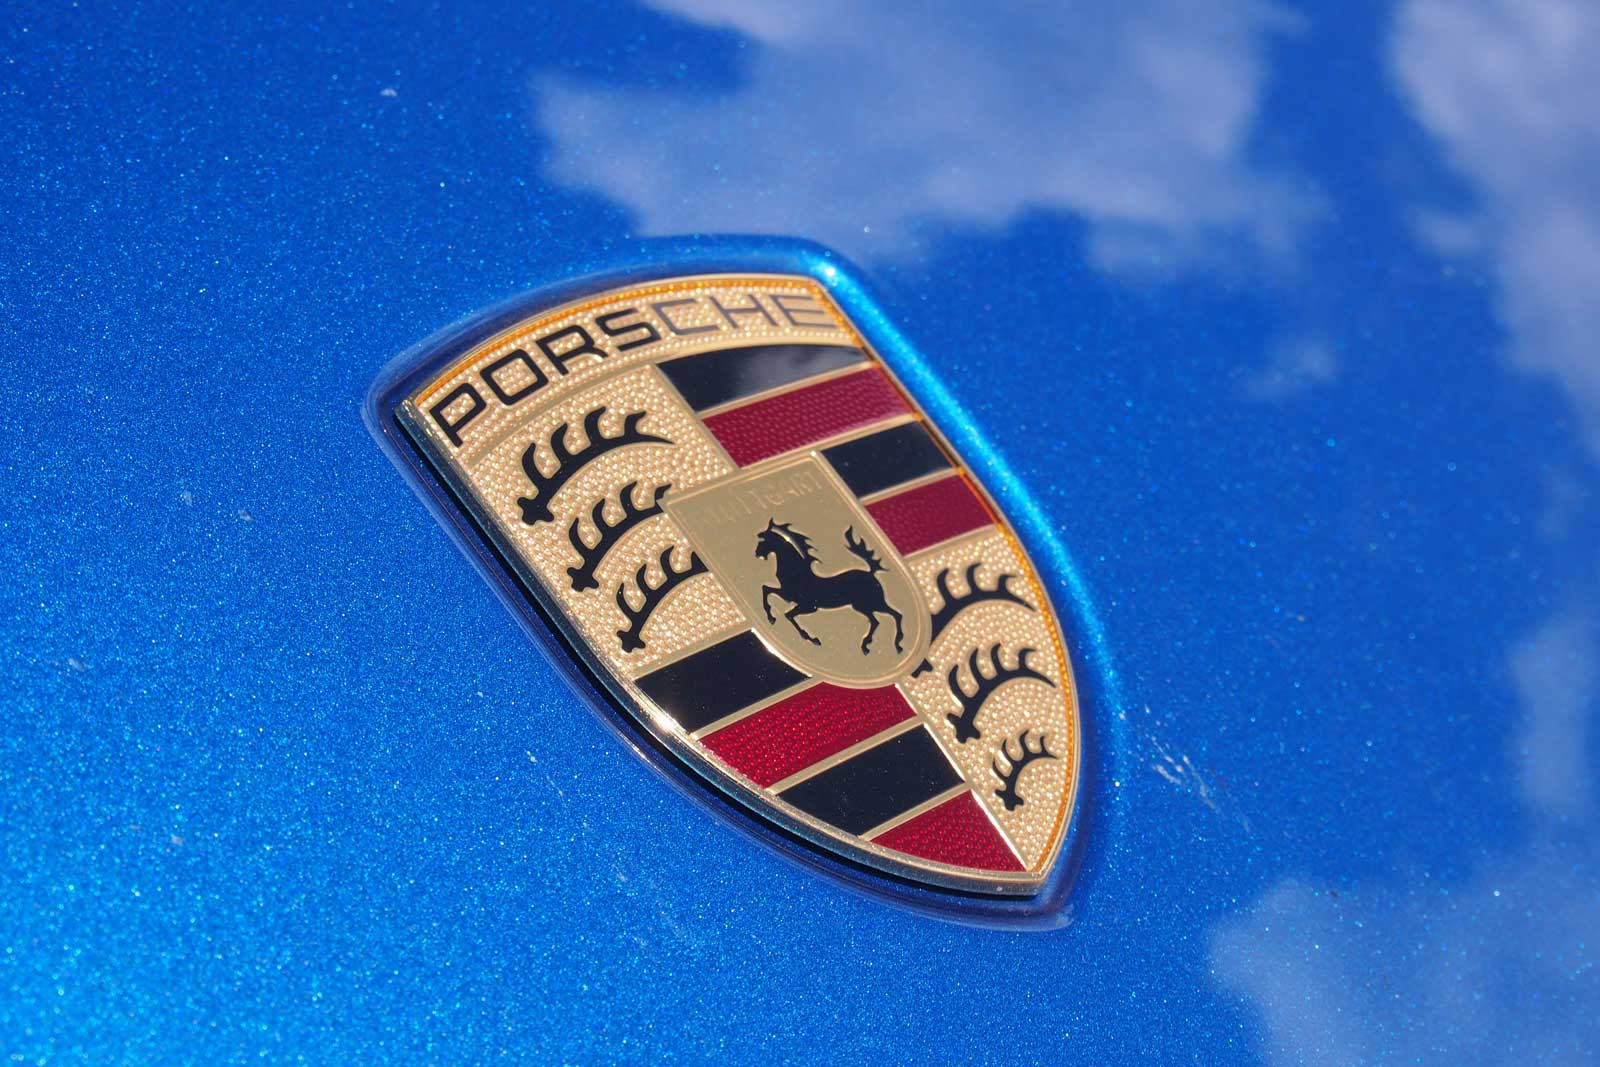 This is How Porsche Trolled Honda So Hard